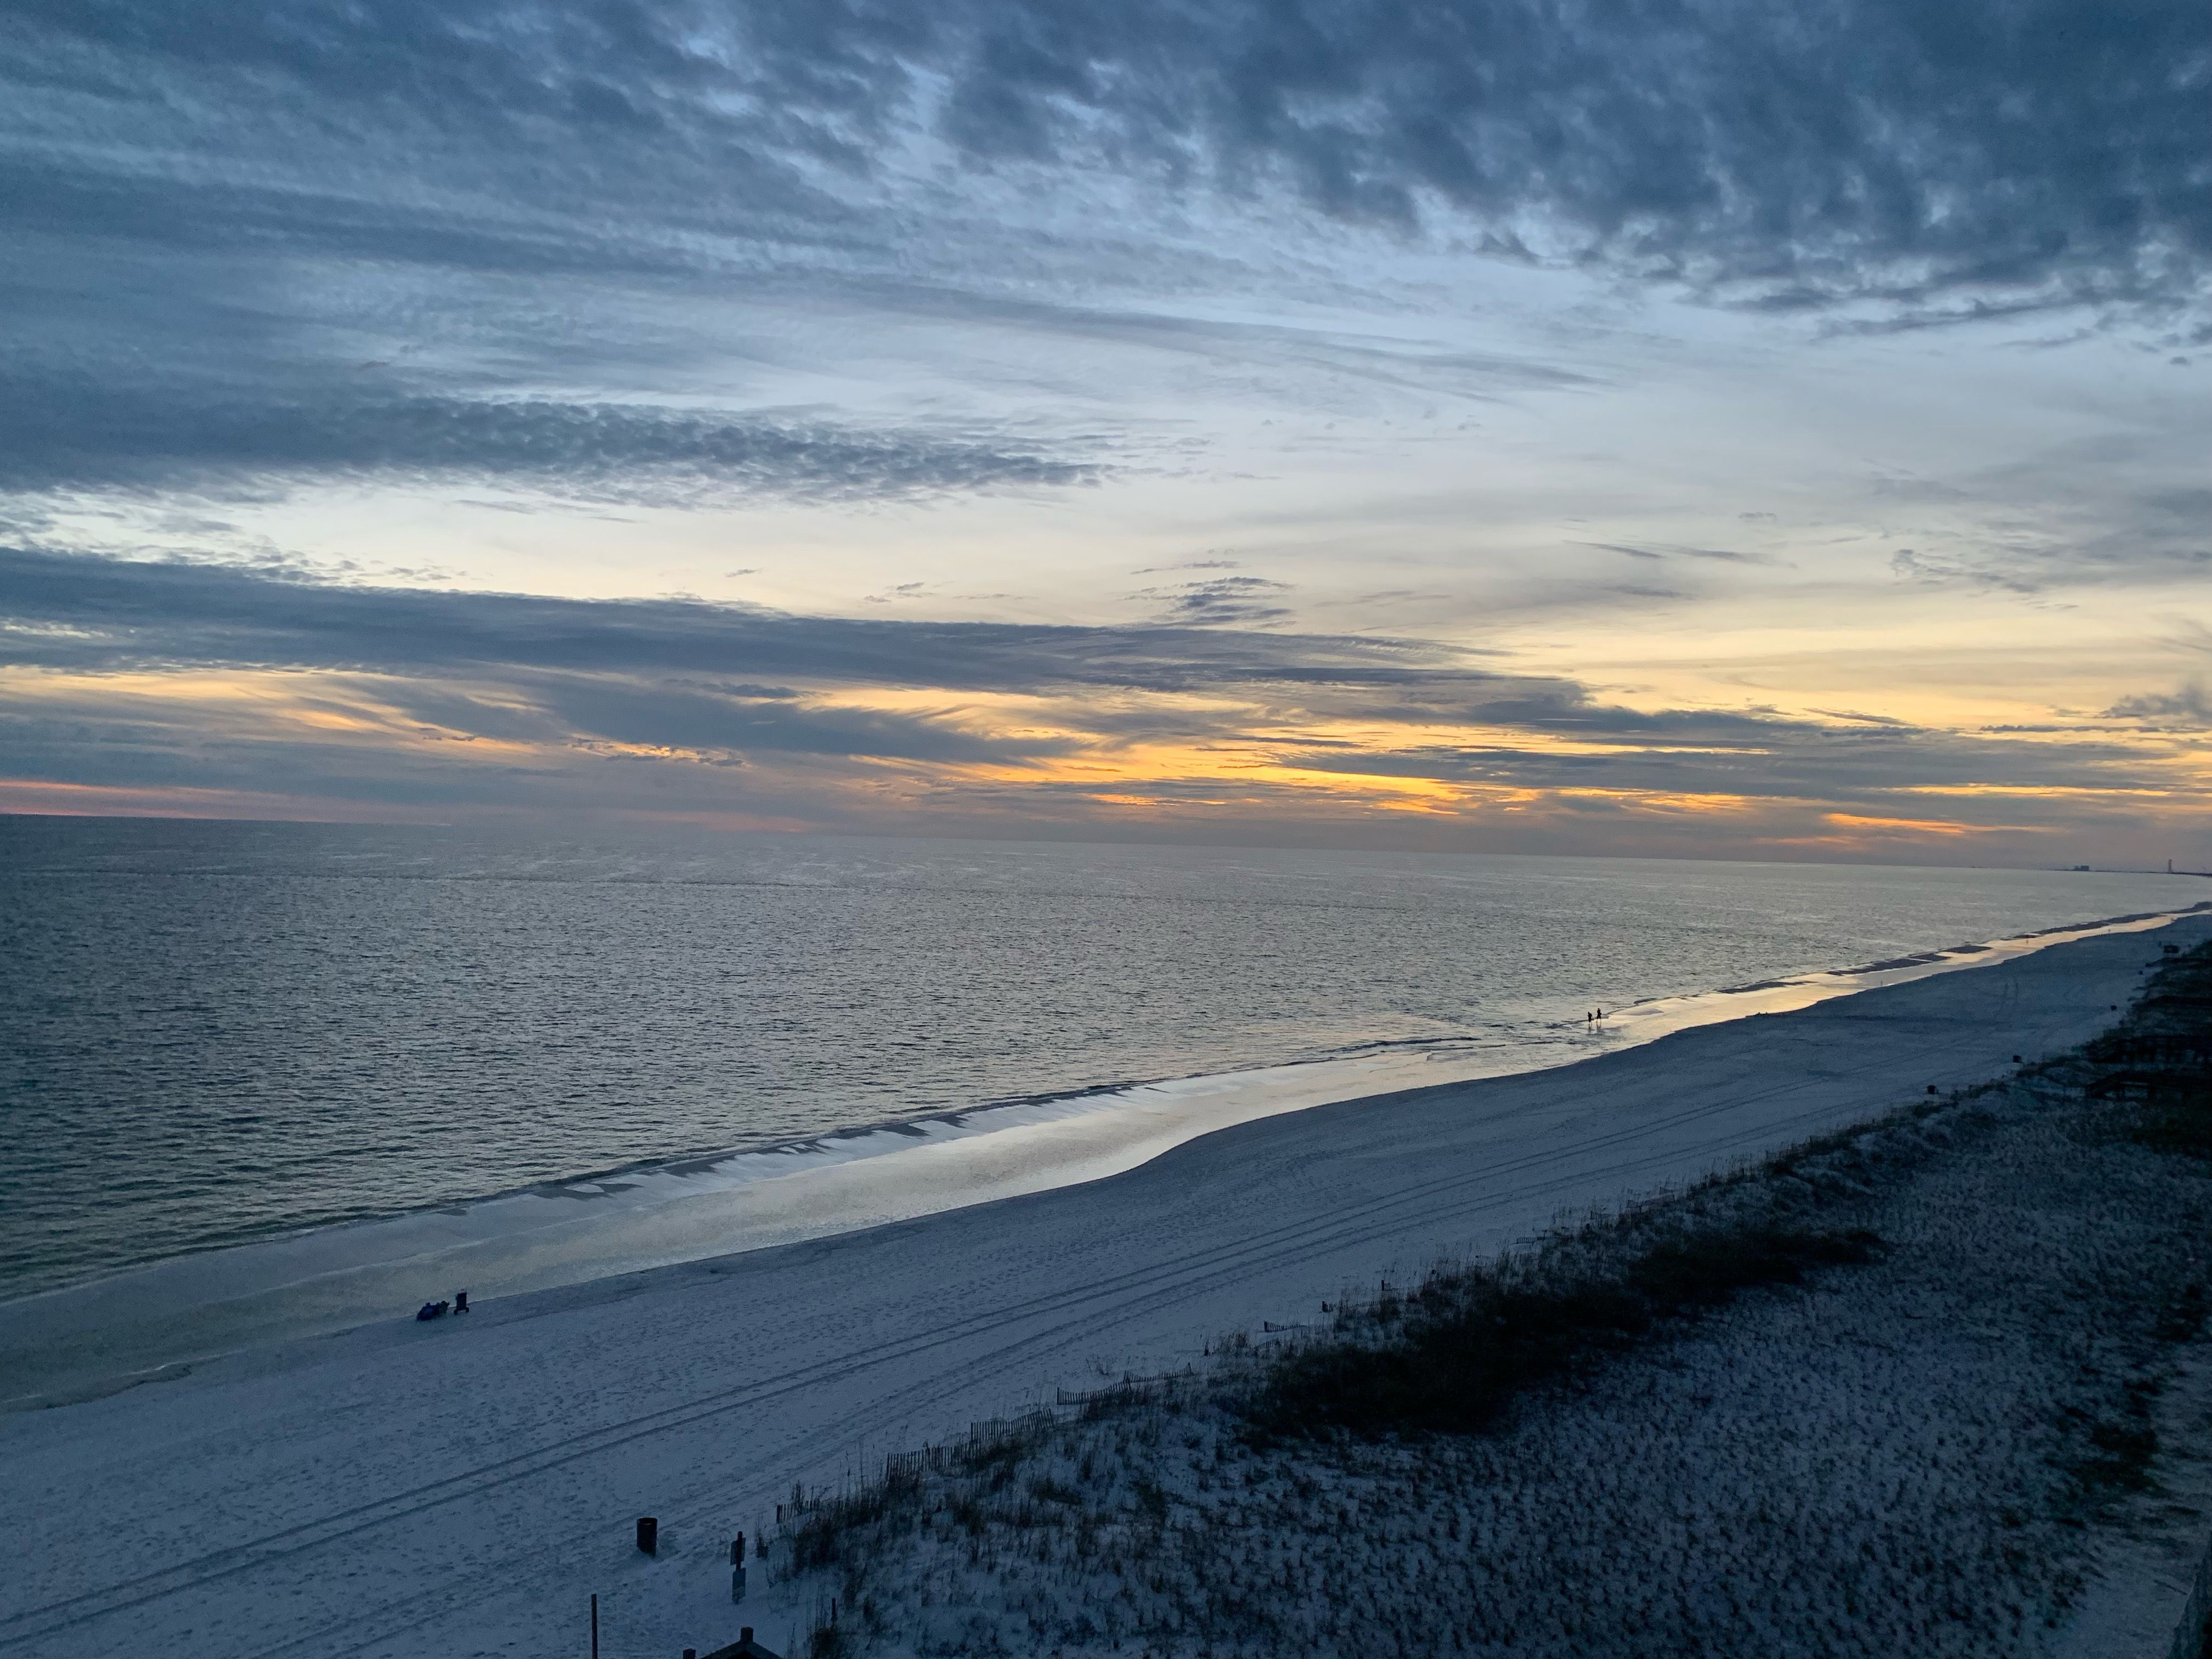 Scenic View Of Fort Walton Beach Against Sky During Sunset